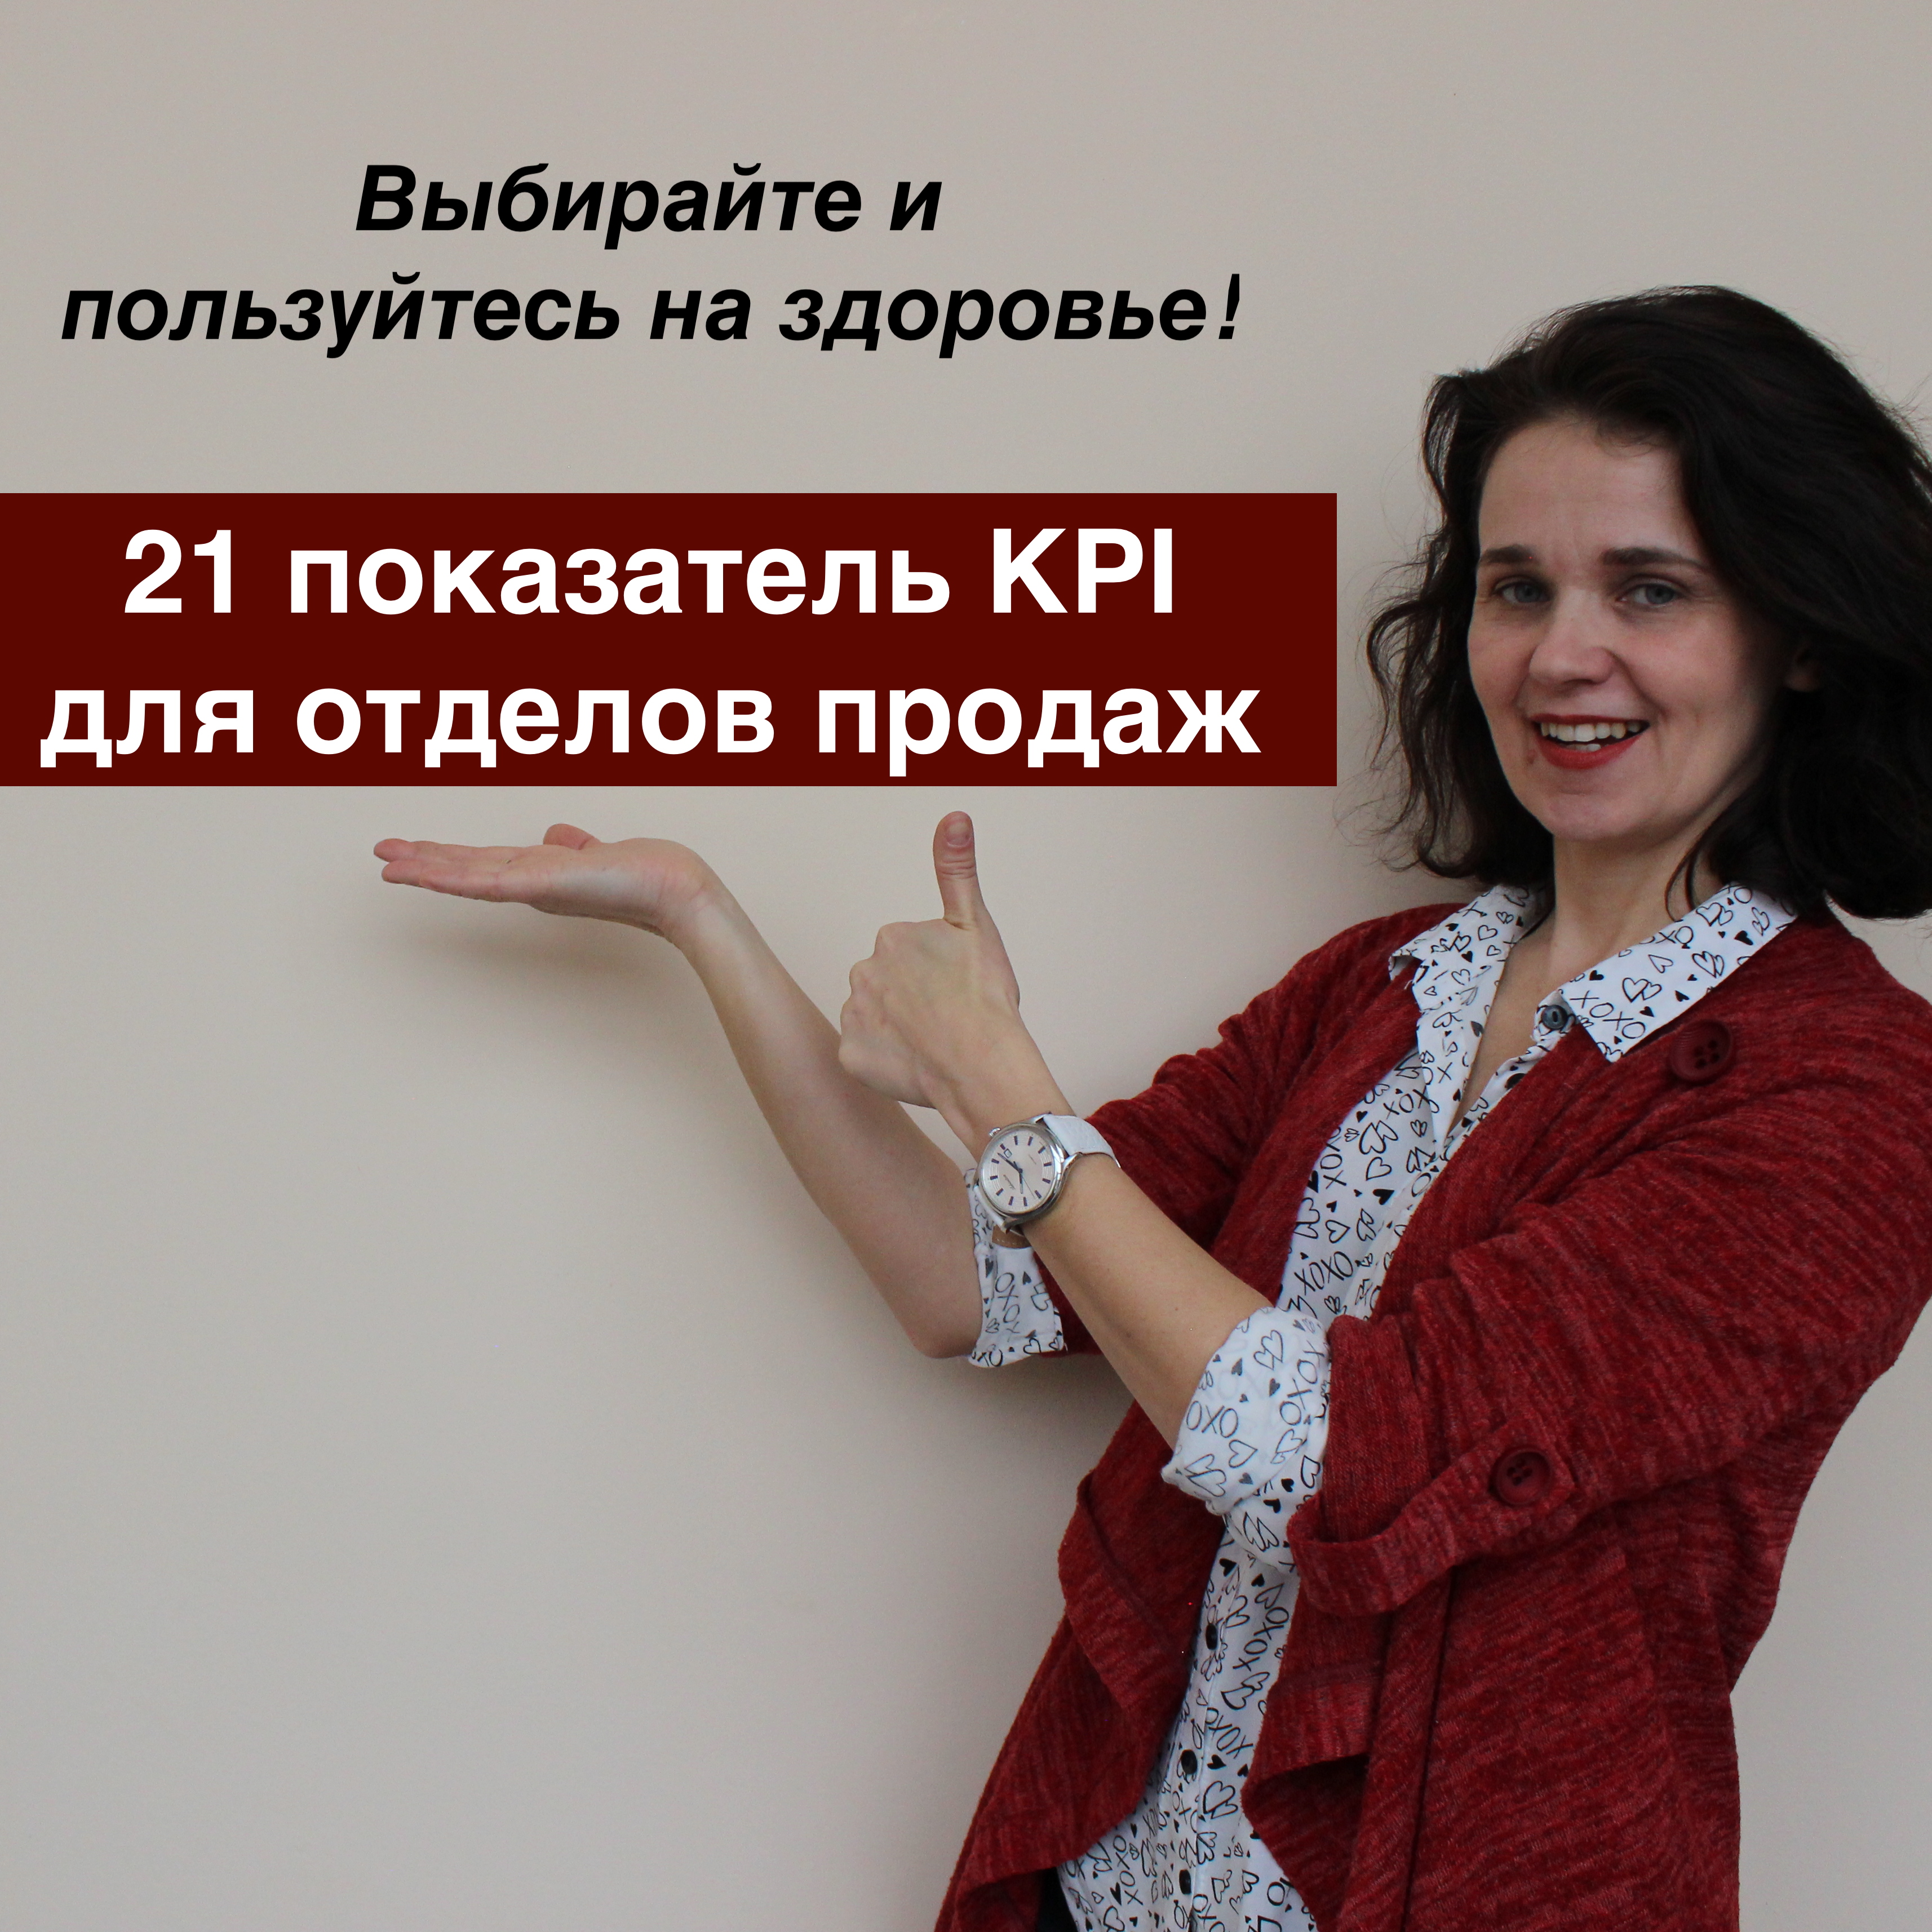 http://dr-shilova.com/wp-content/uploads/2020/02/21_kpi_for-sale.jpg